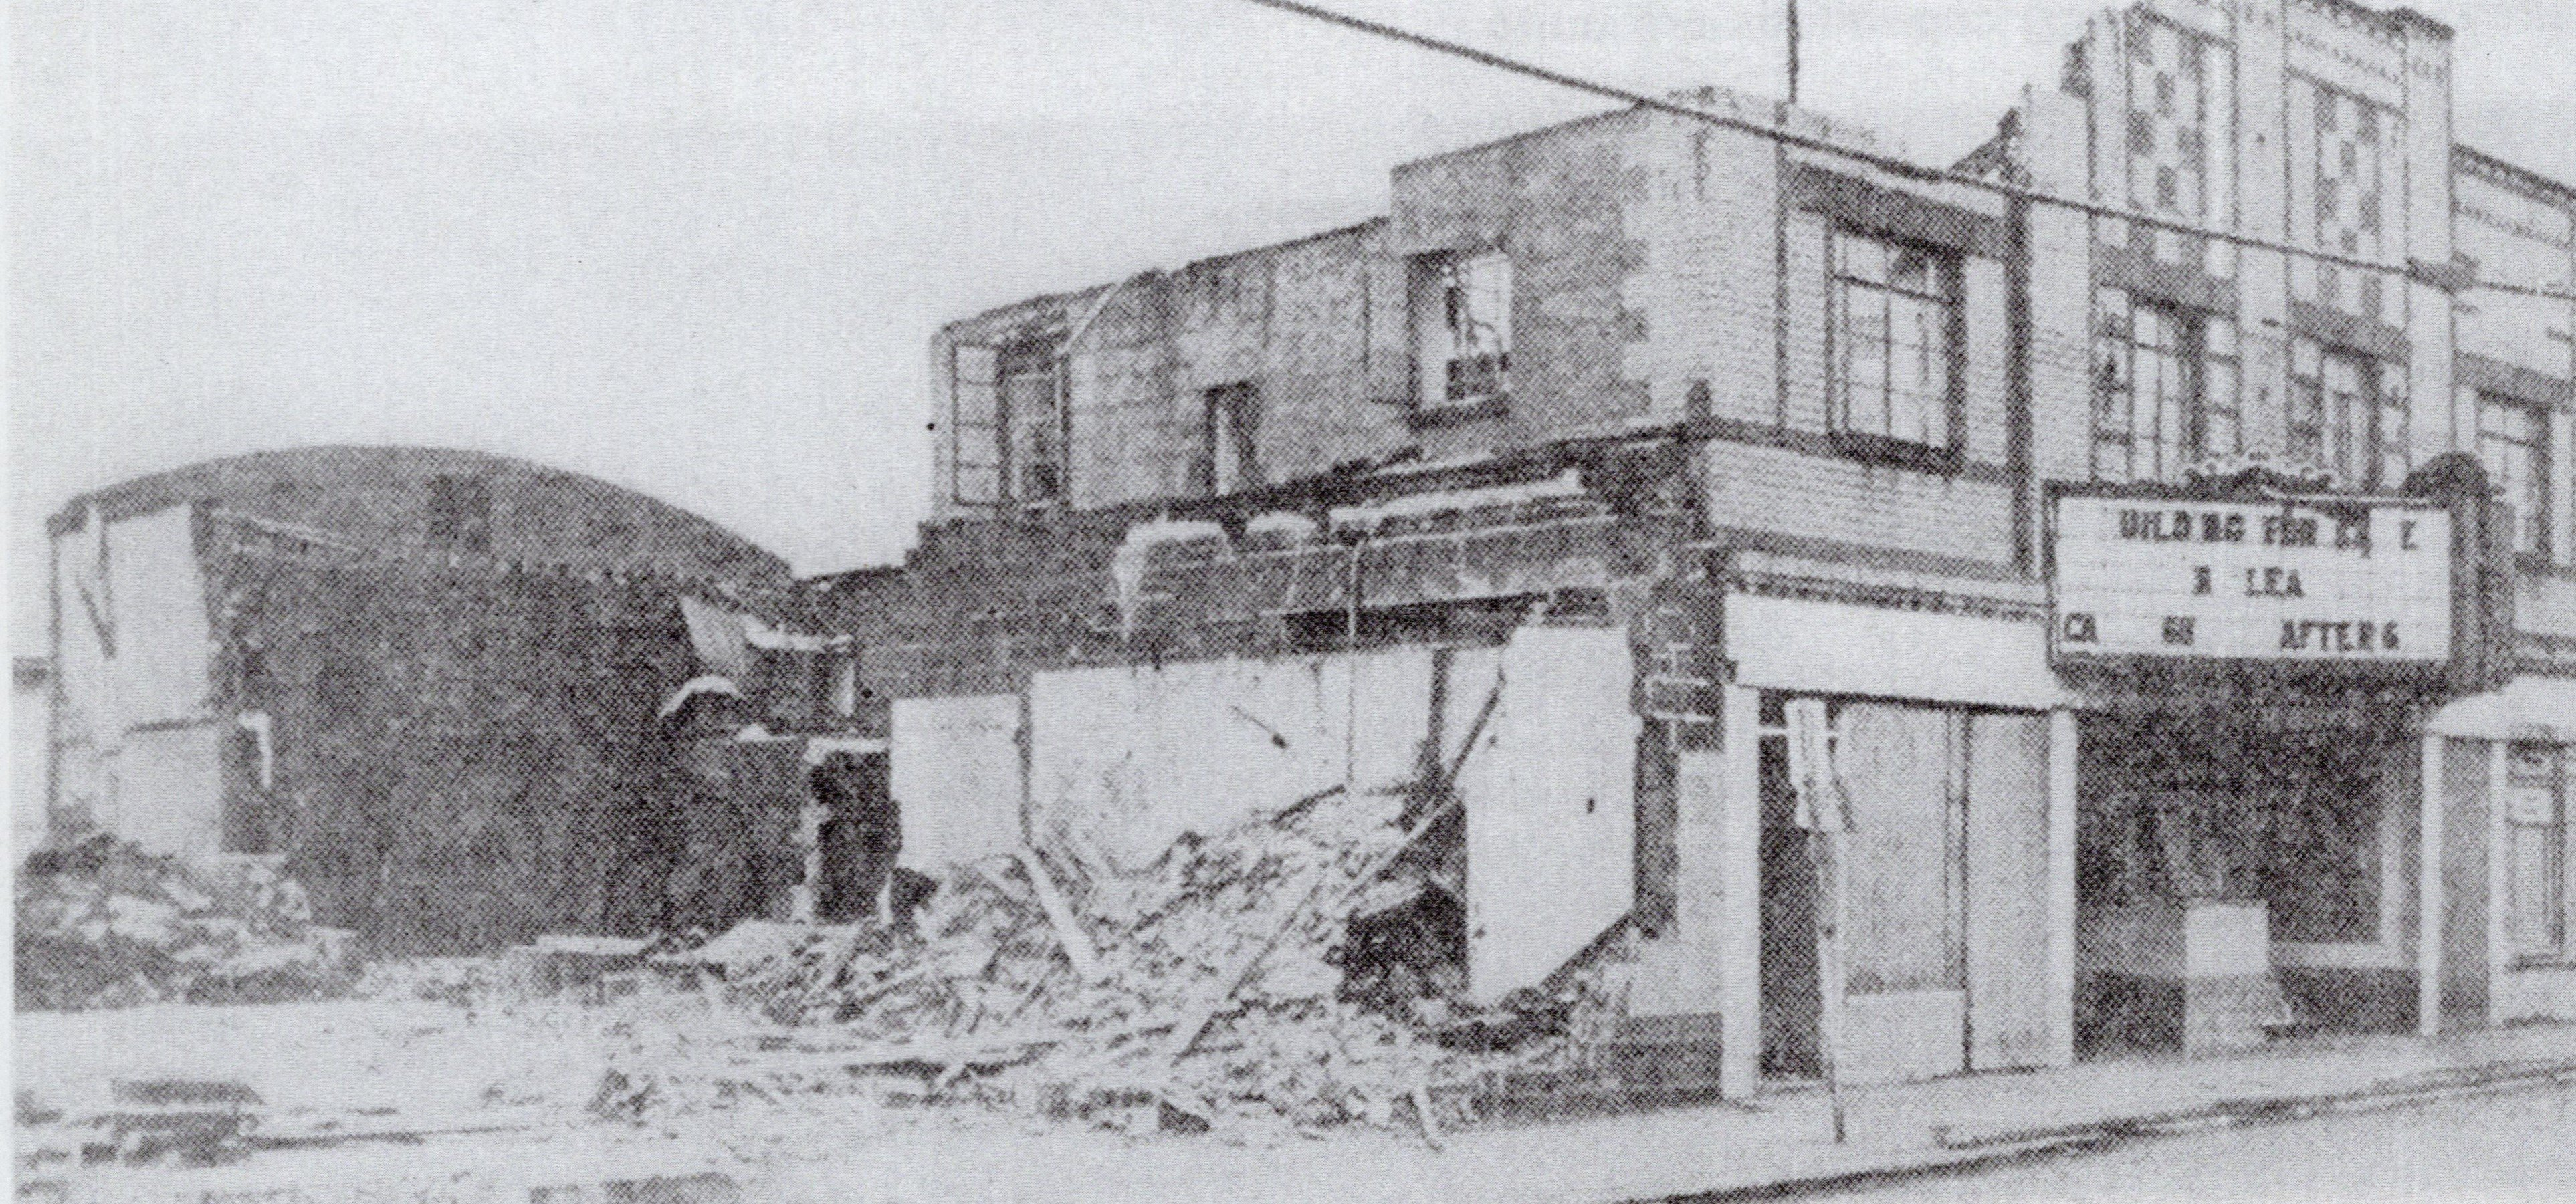 Urling's second theater, the Victory (named for its construction during WW2), awaits demolition to make way for a Haddad clothing store in 1969. The LaBelle is the oldest surviving theater in South Charleston.